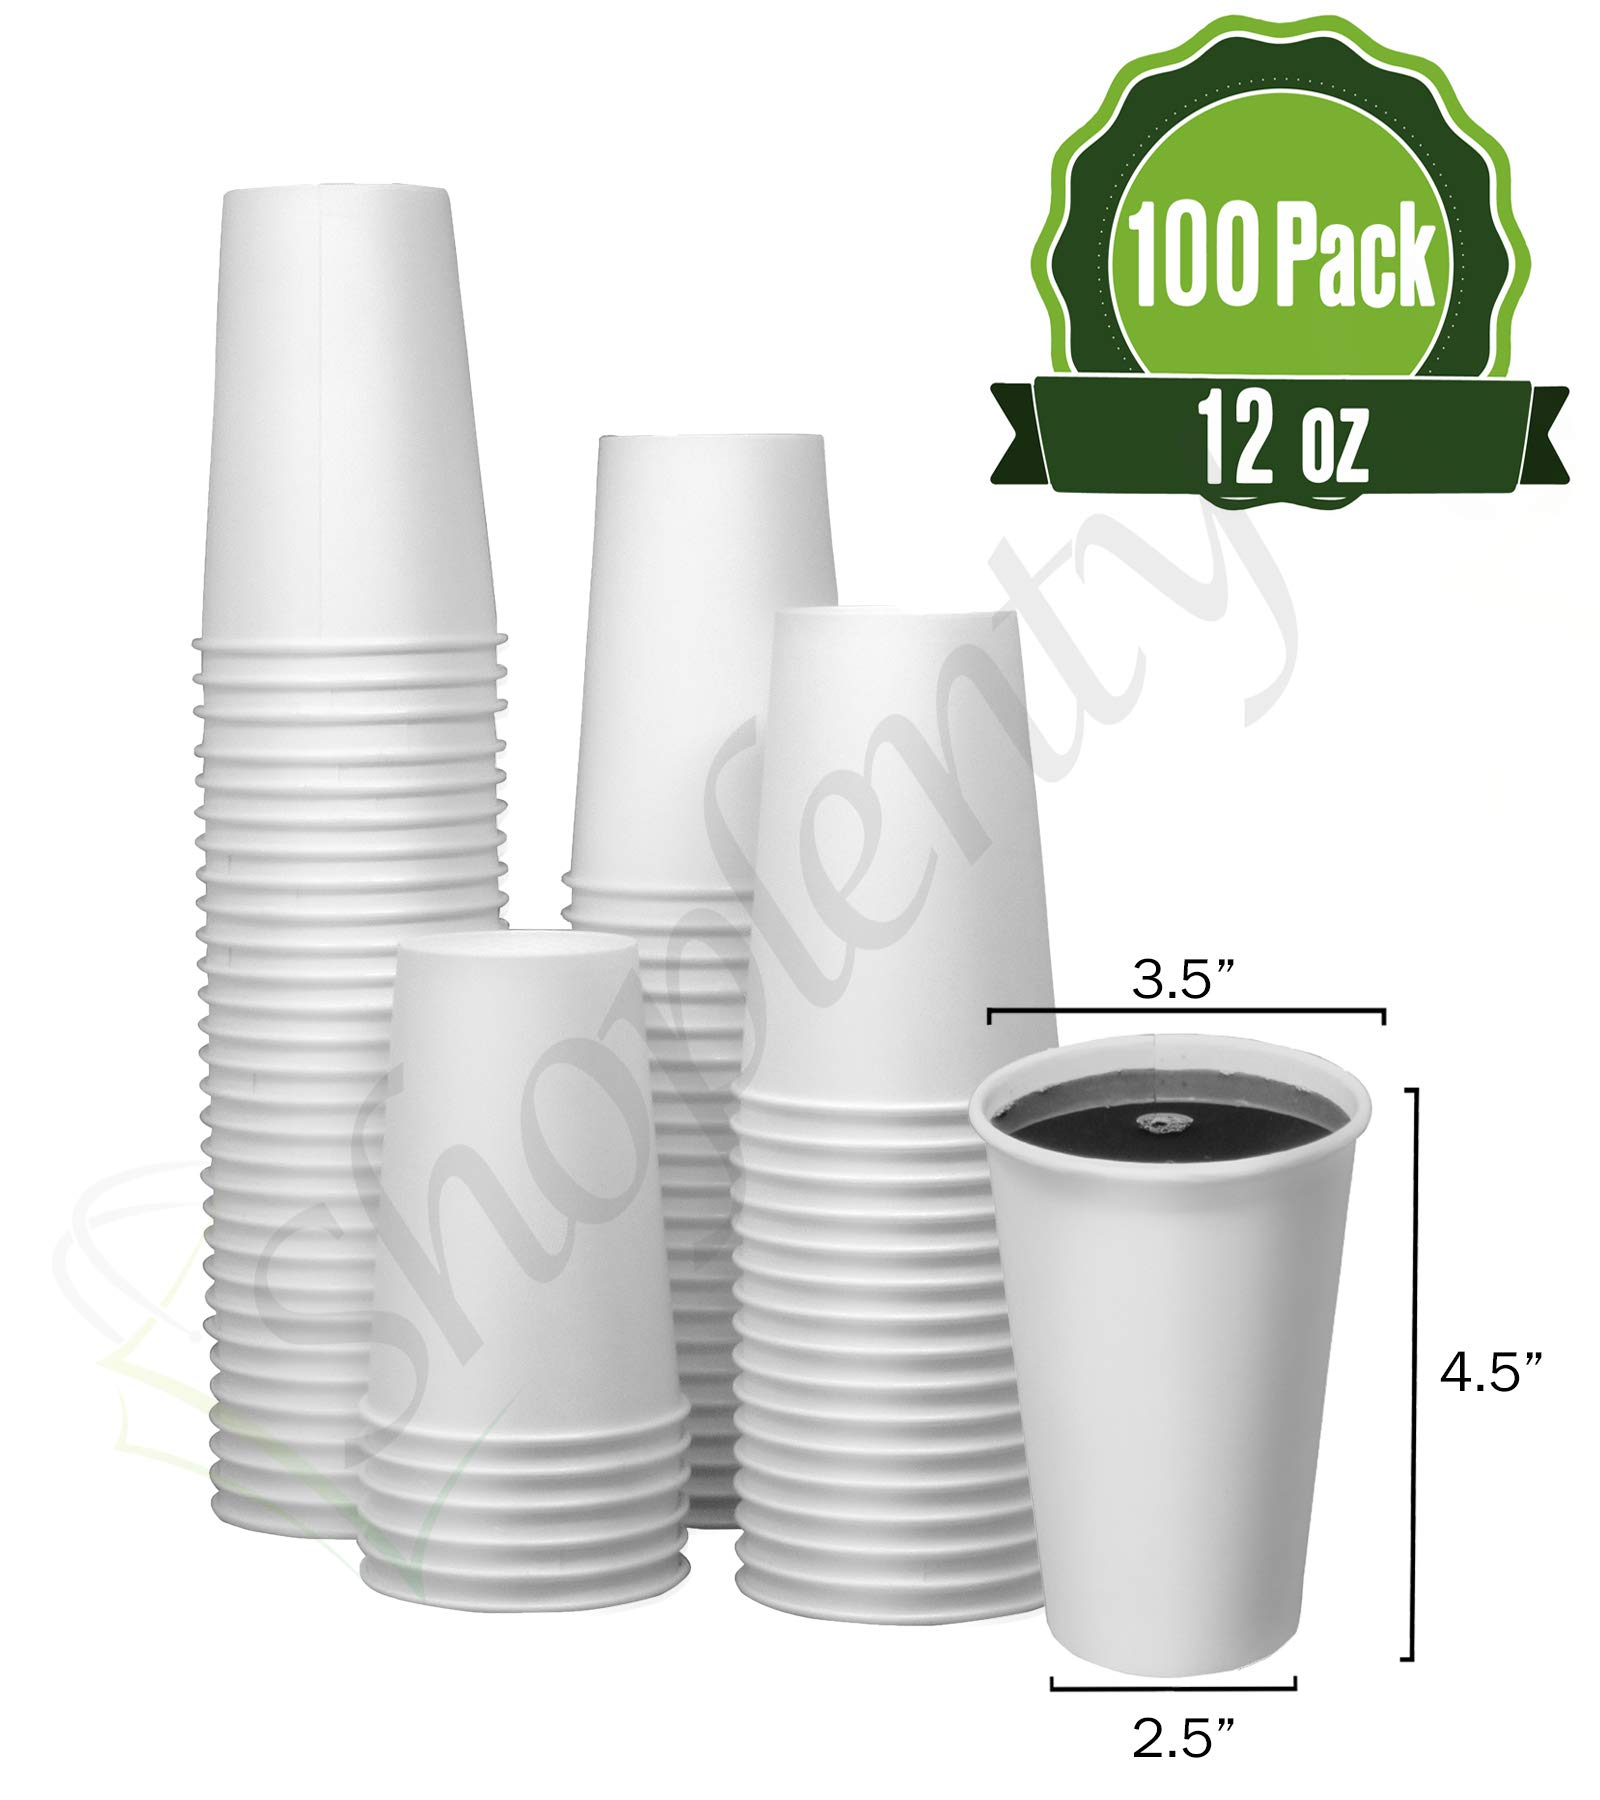 Hot White Paper Coffee Cups [ 12oz 100 Pack ] - Disposable Coffee Cups Ideal for Home, Office, Restaurant, and Togo